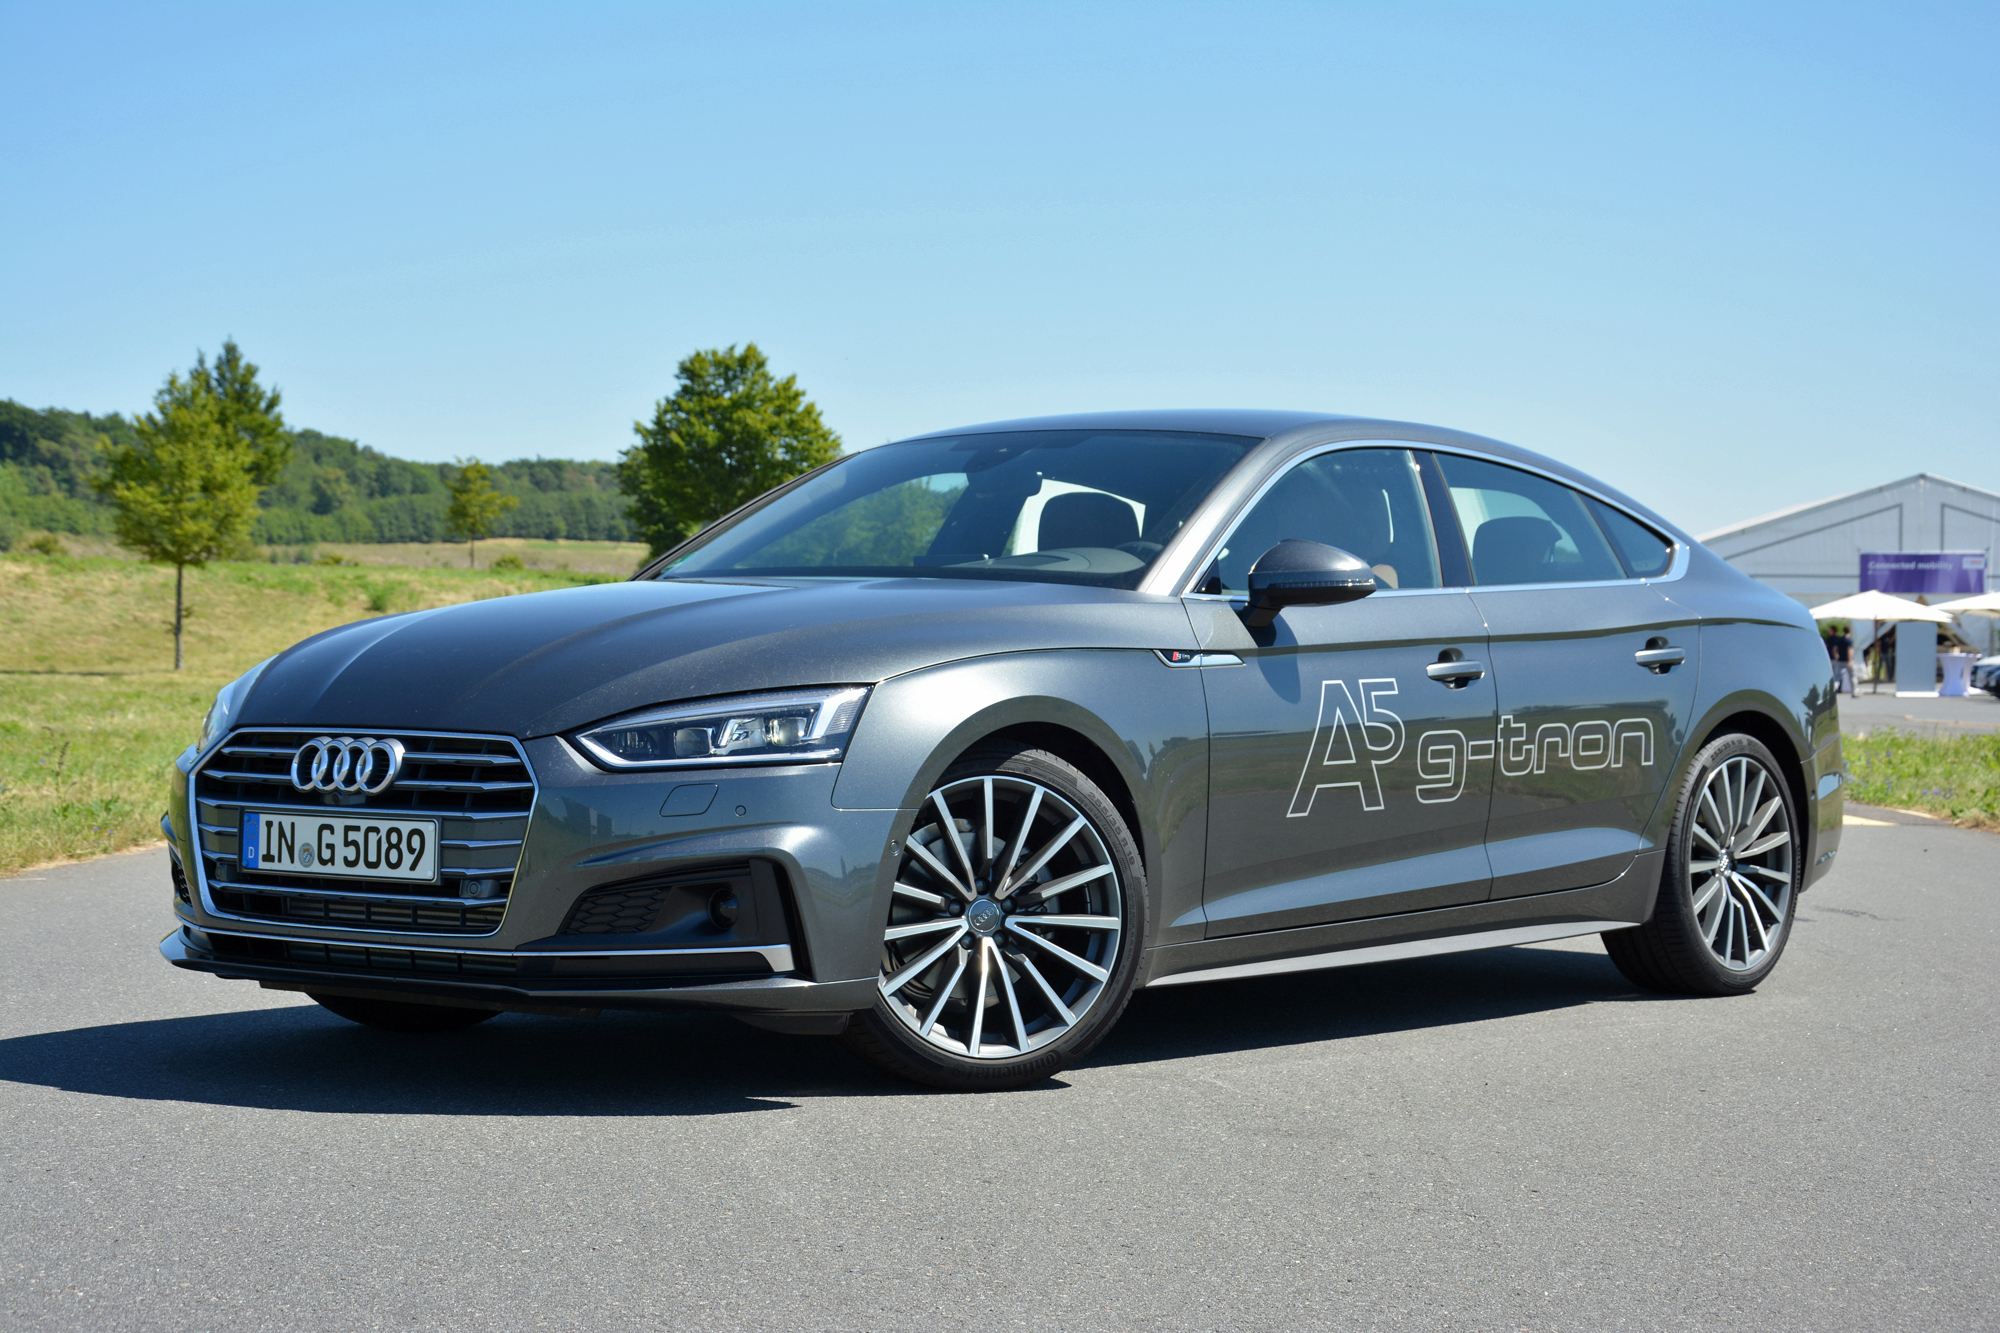 Audi A Sportback Gtron First Drive Of Naturalgas Luxury Sport - Audi recent model